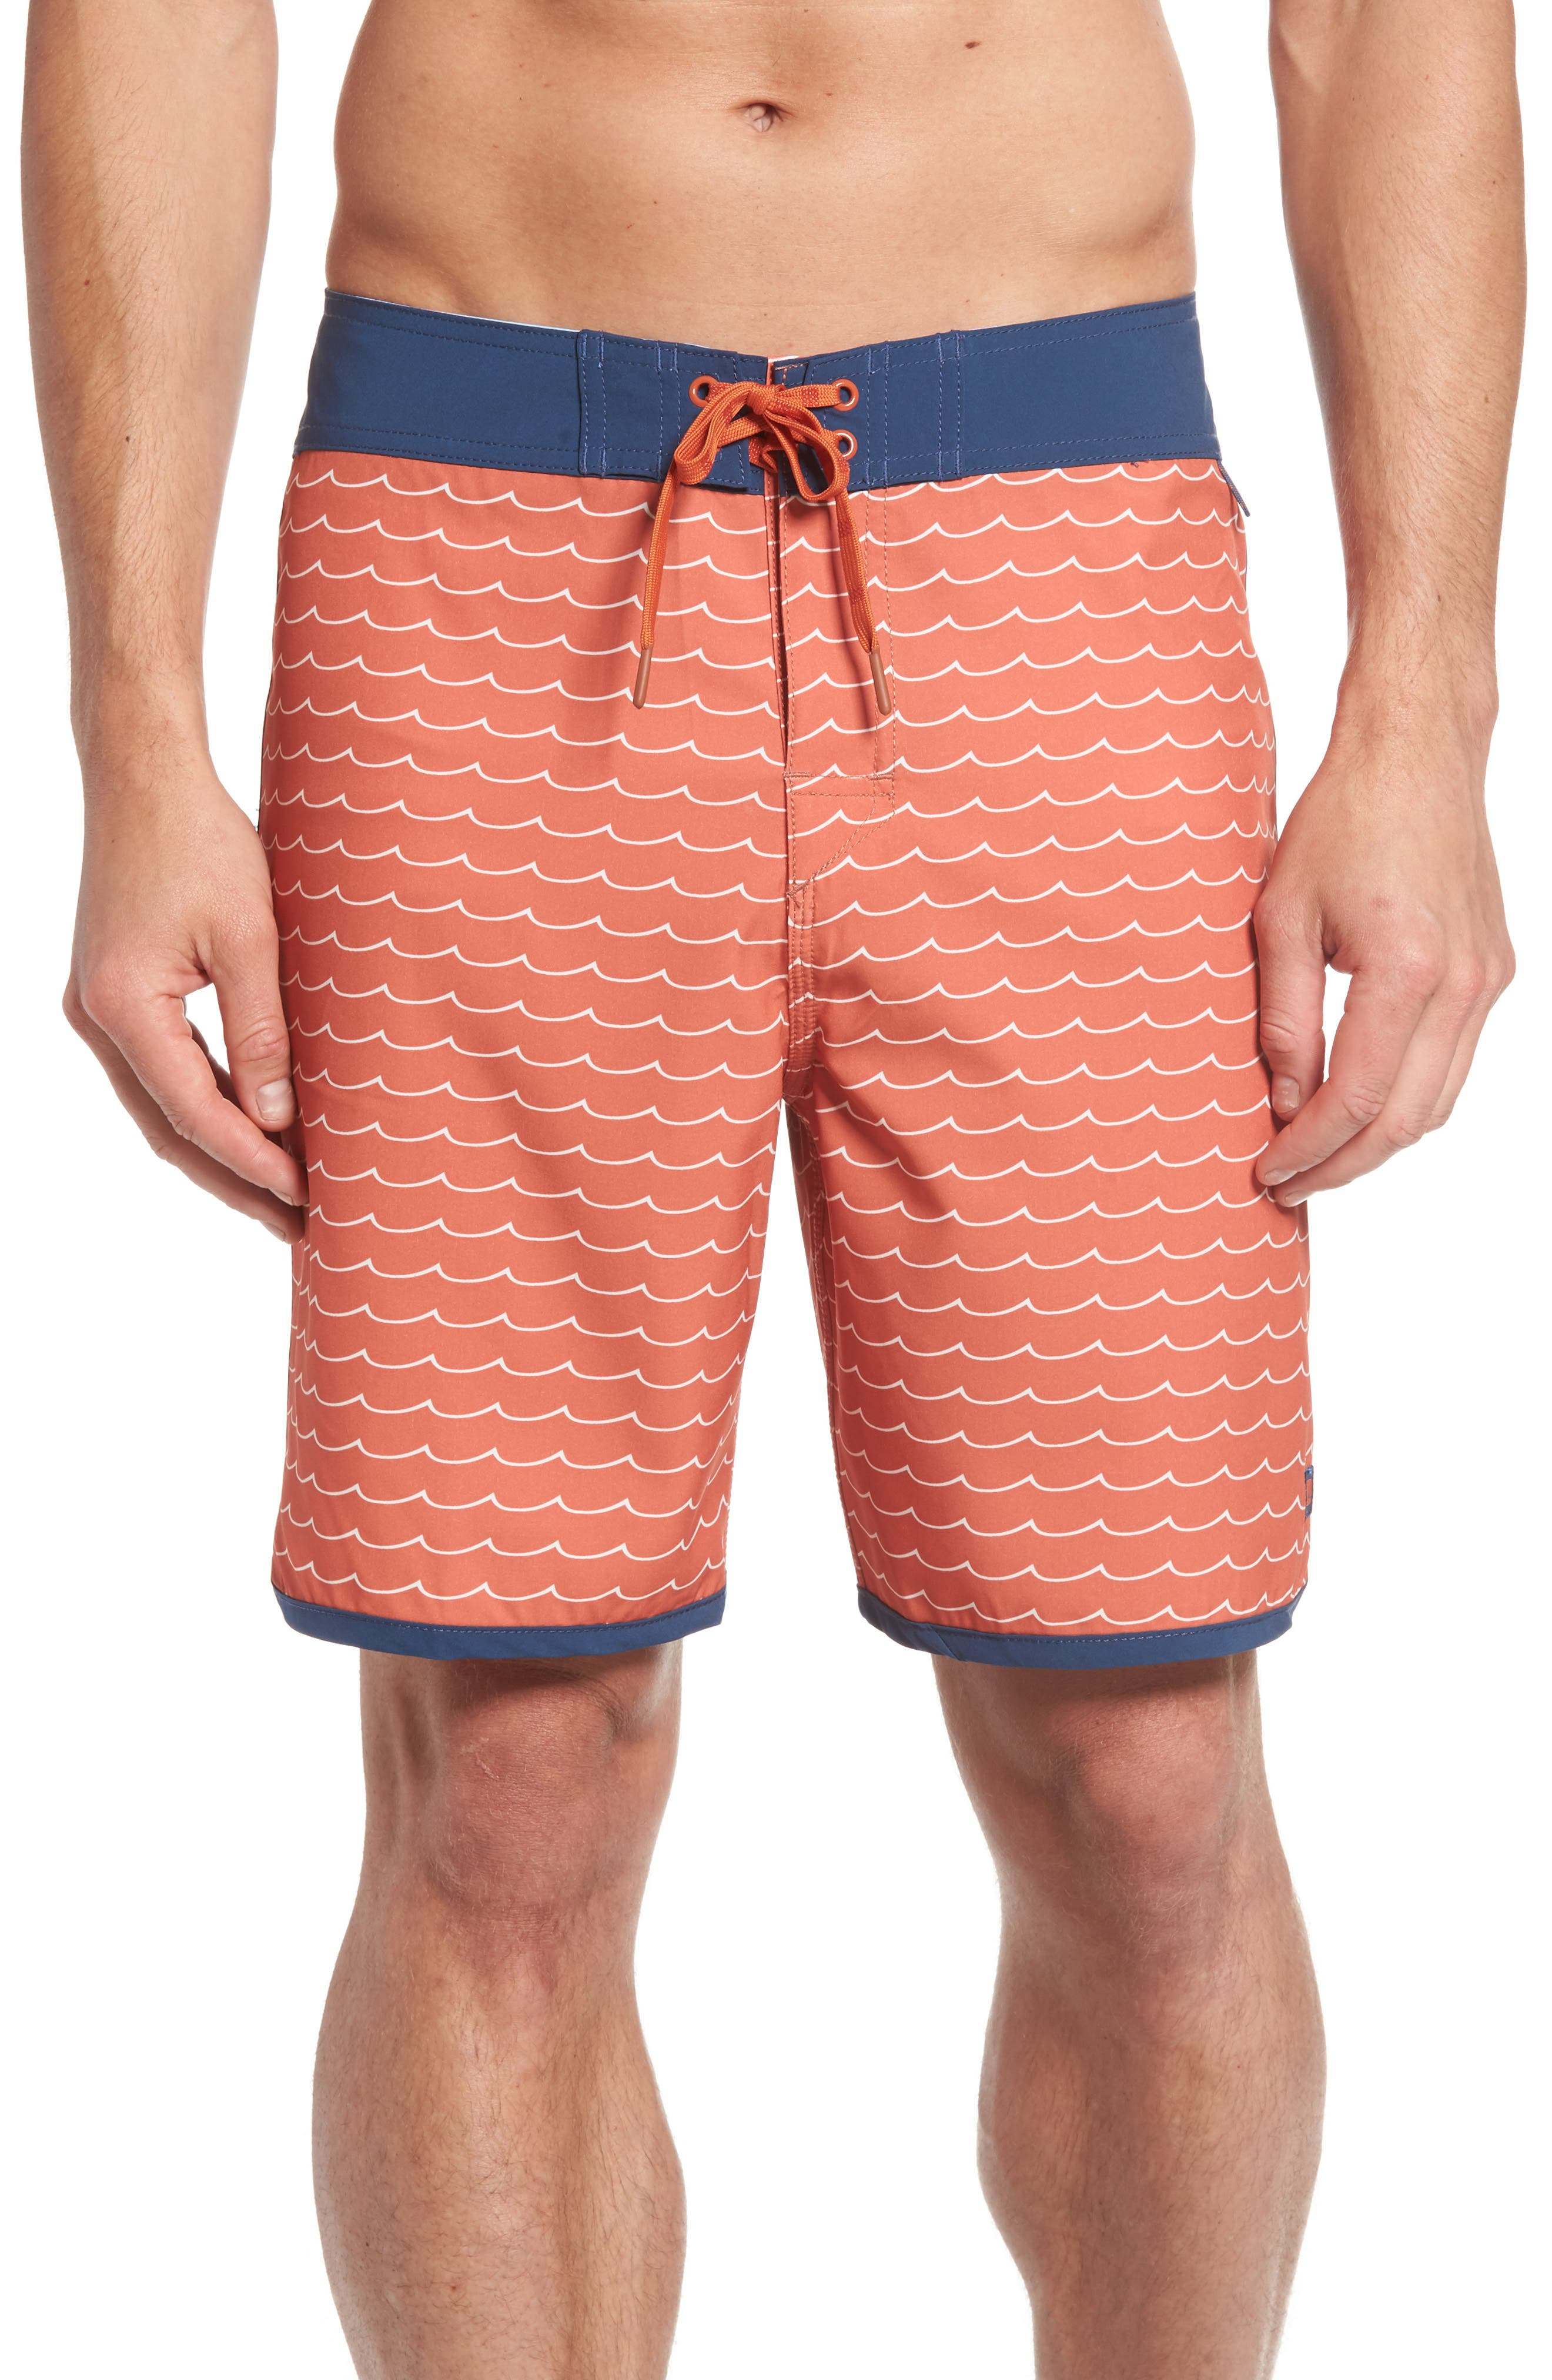 Alternate Image 1 Selected - Cova 'Windswell' Board Shorts